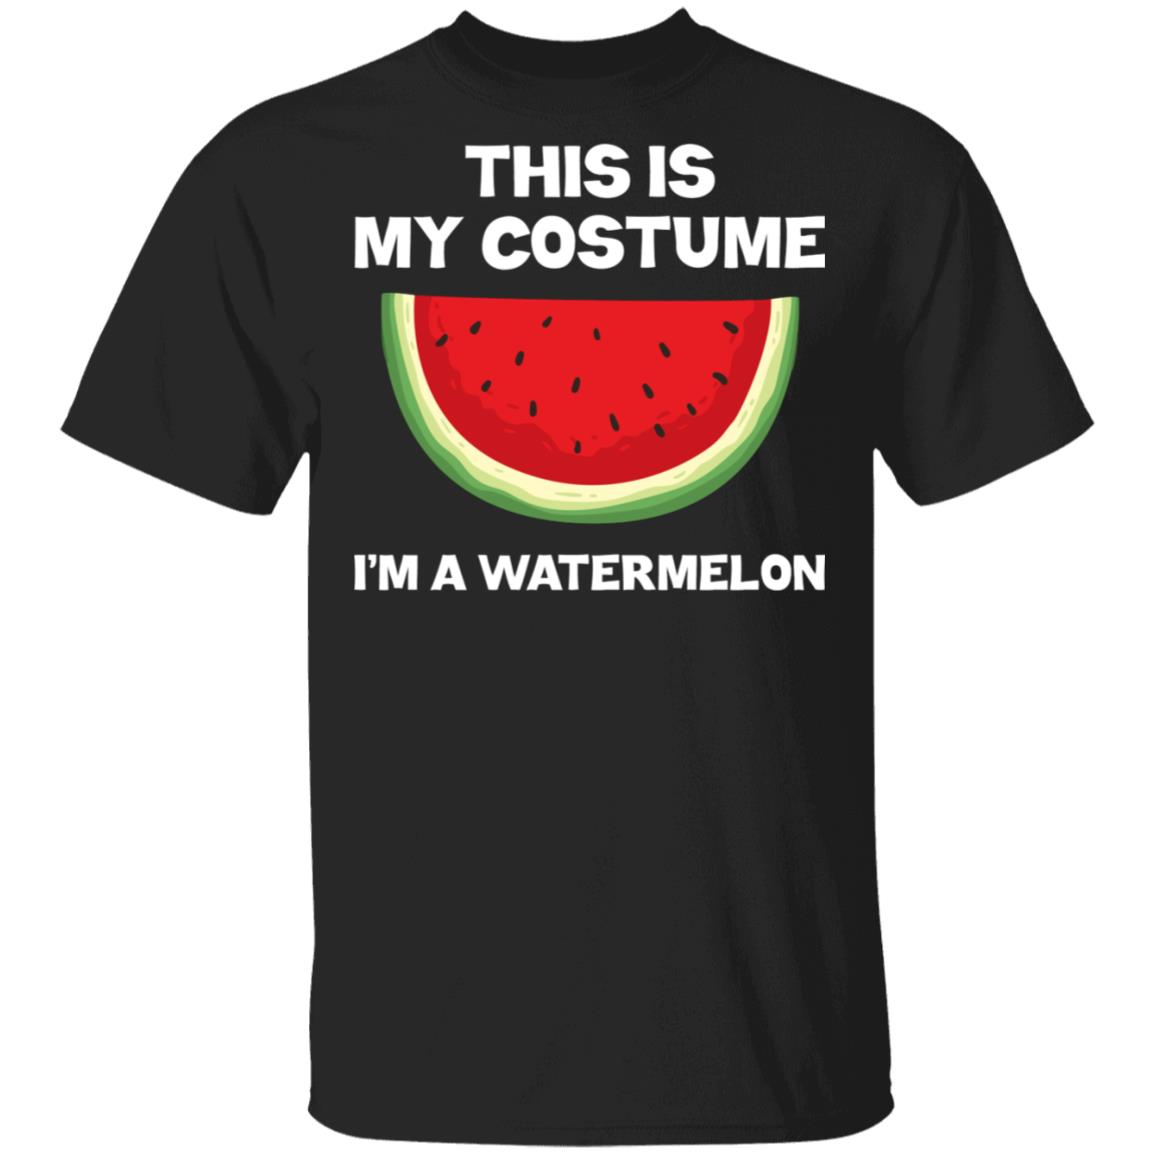 I'm A Watermelon This Is My Costume Unisex Short Sleeve